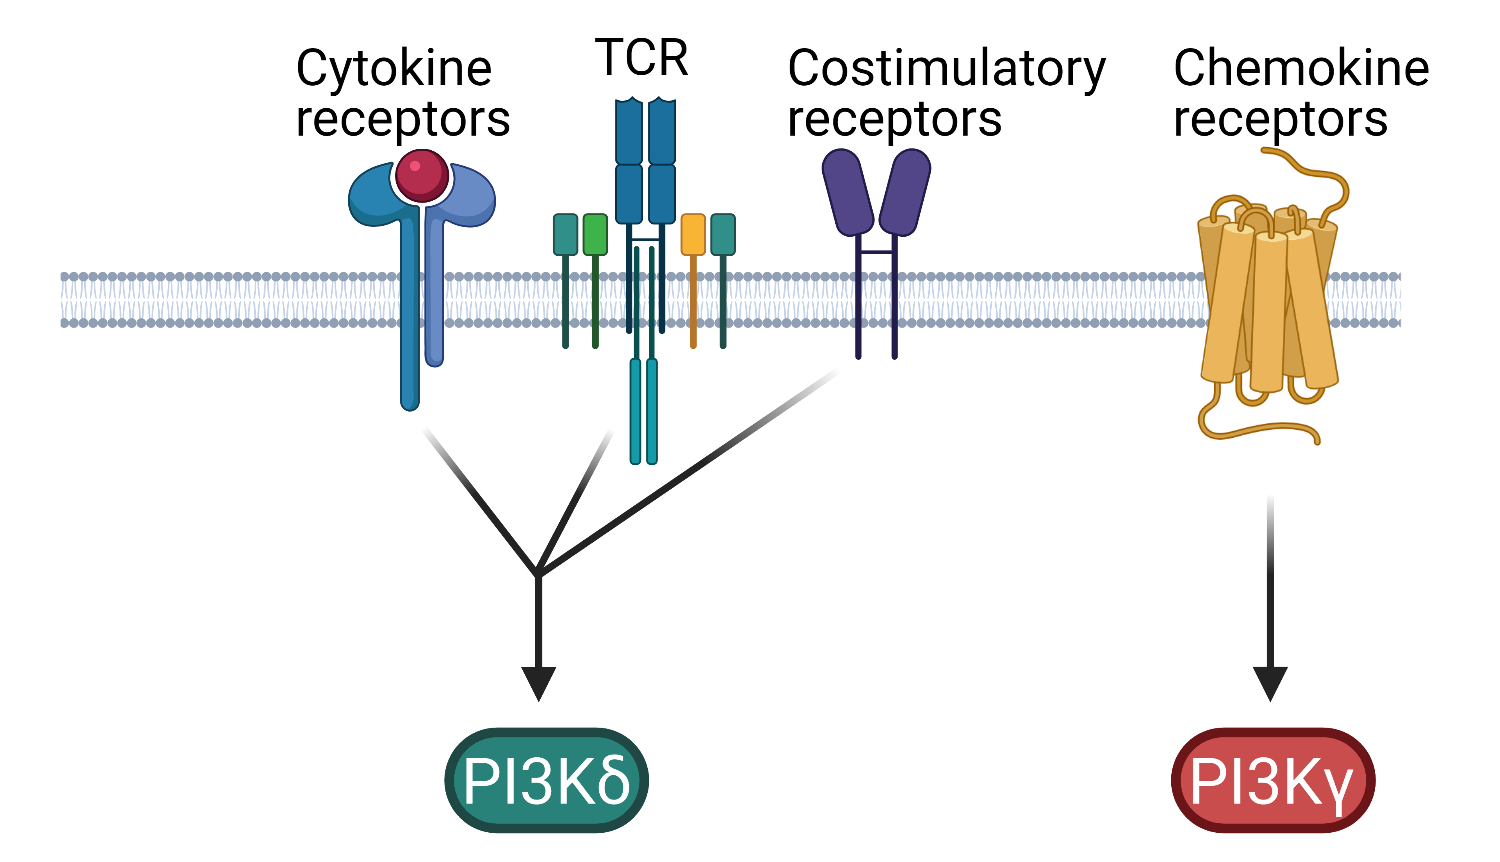 T cell activation of PI3Kd and PI3Kg